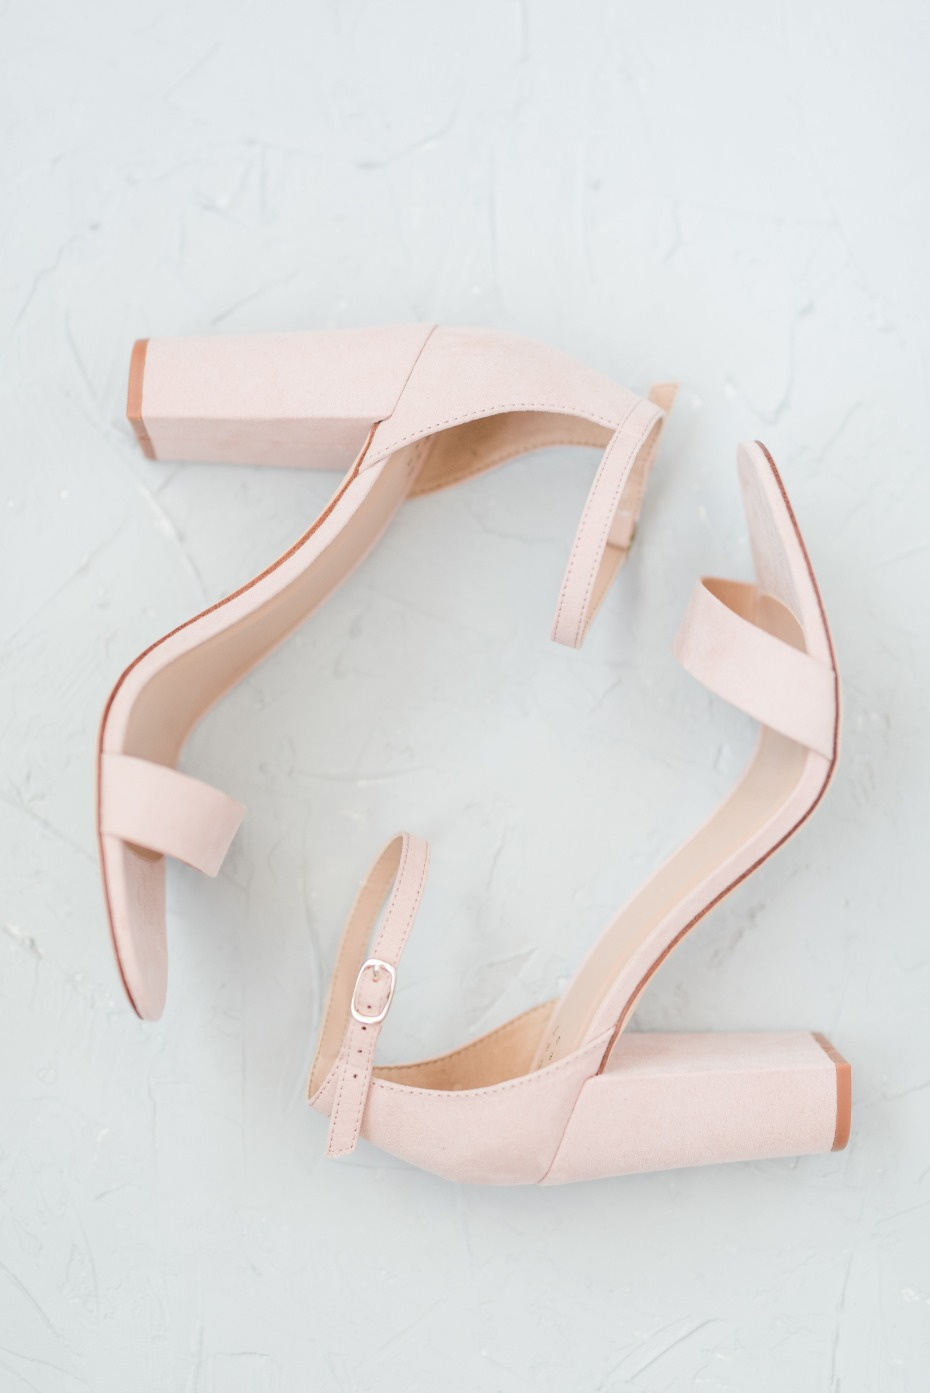 Blush heels for the bride